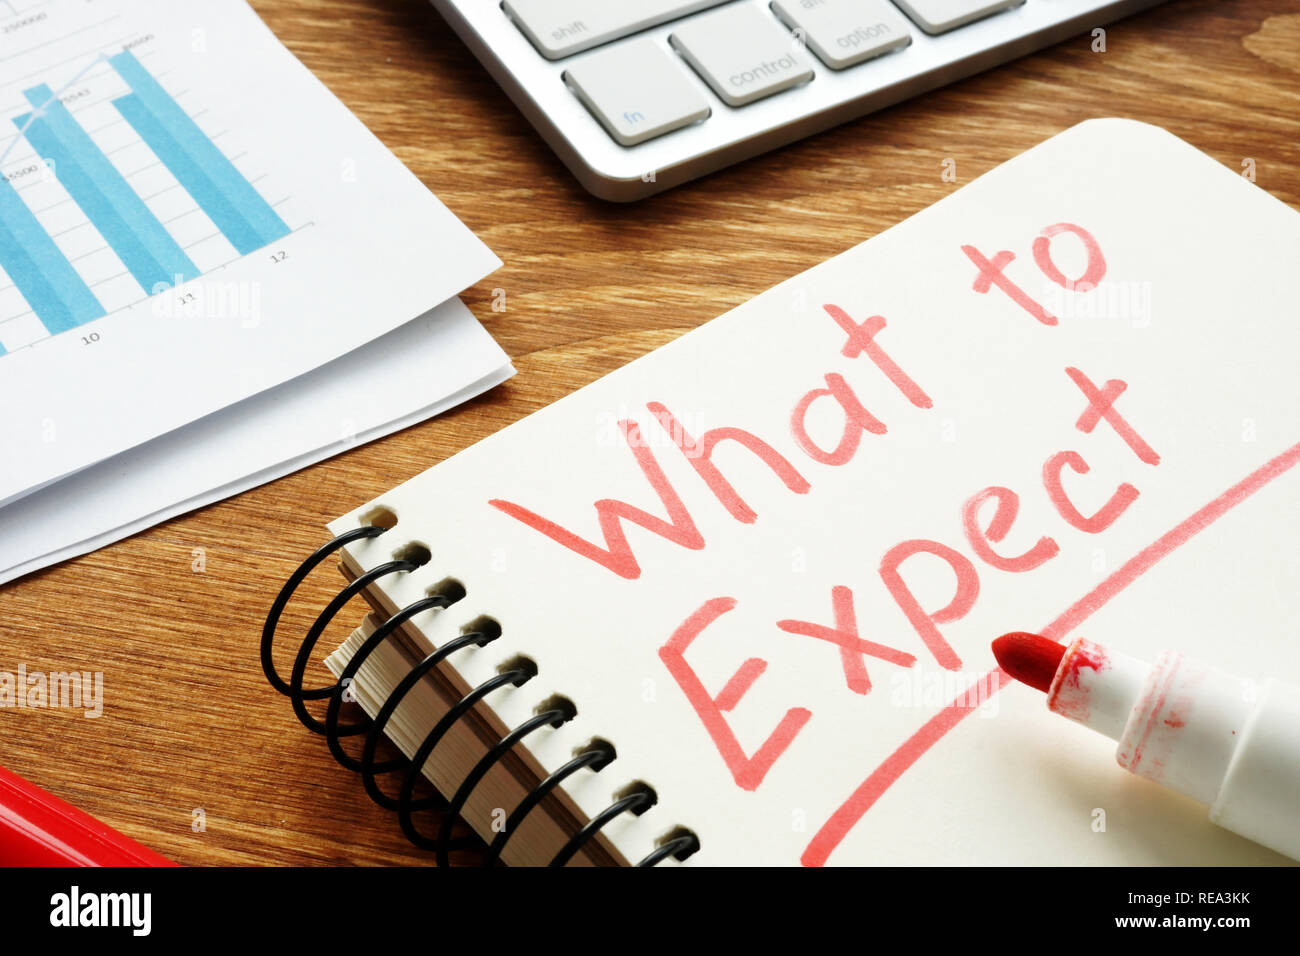 What to Expect. Business papers with prediction. - Stock Image